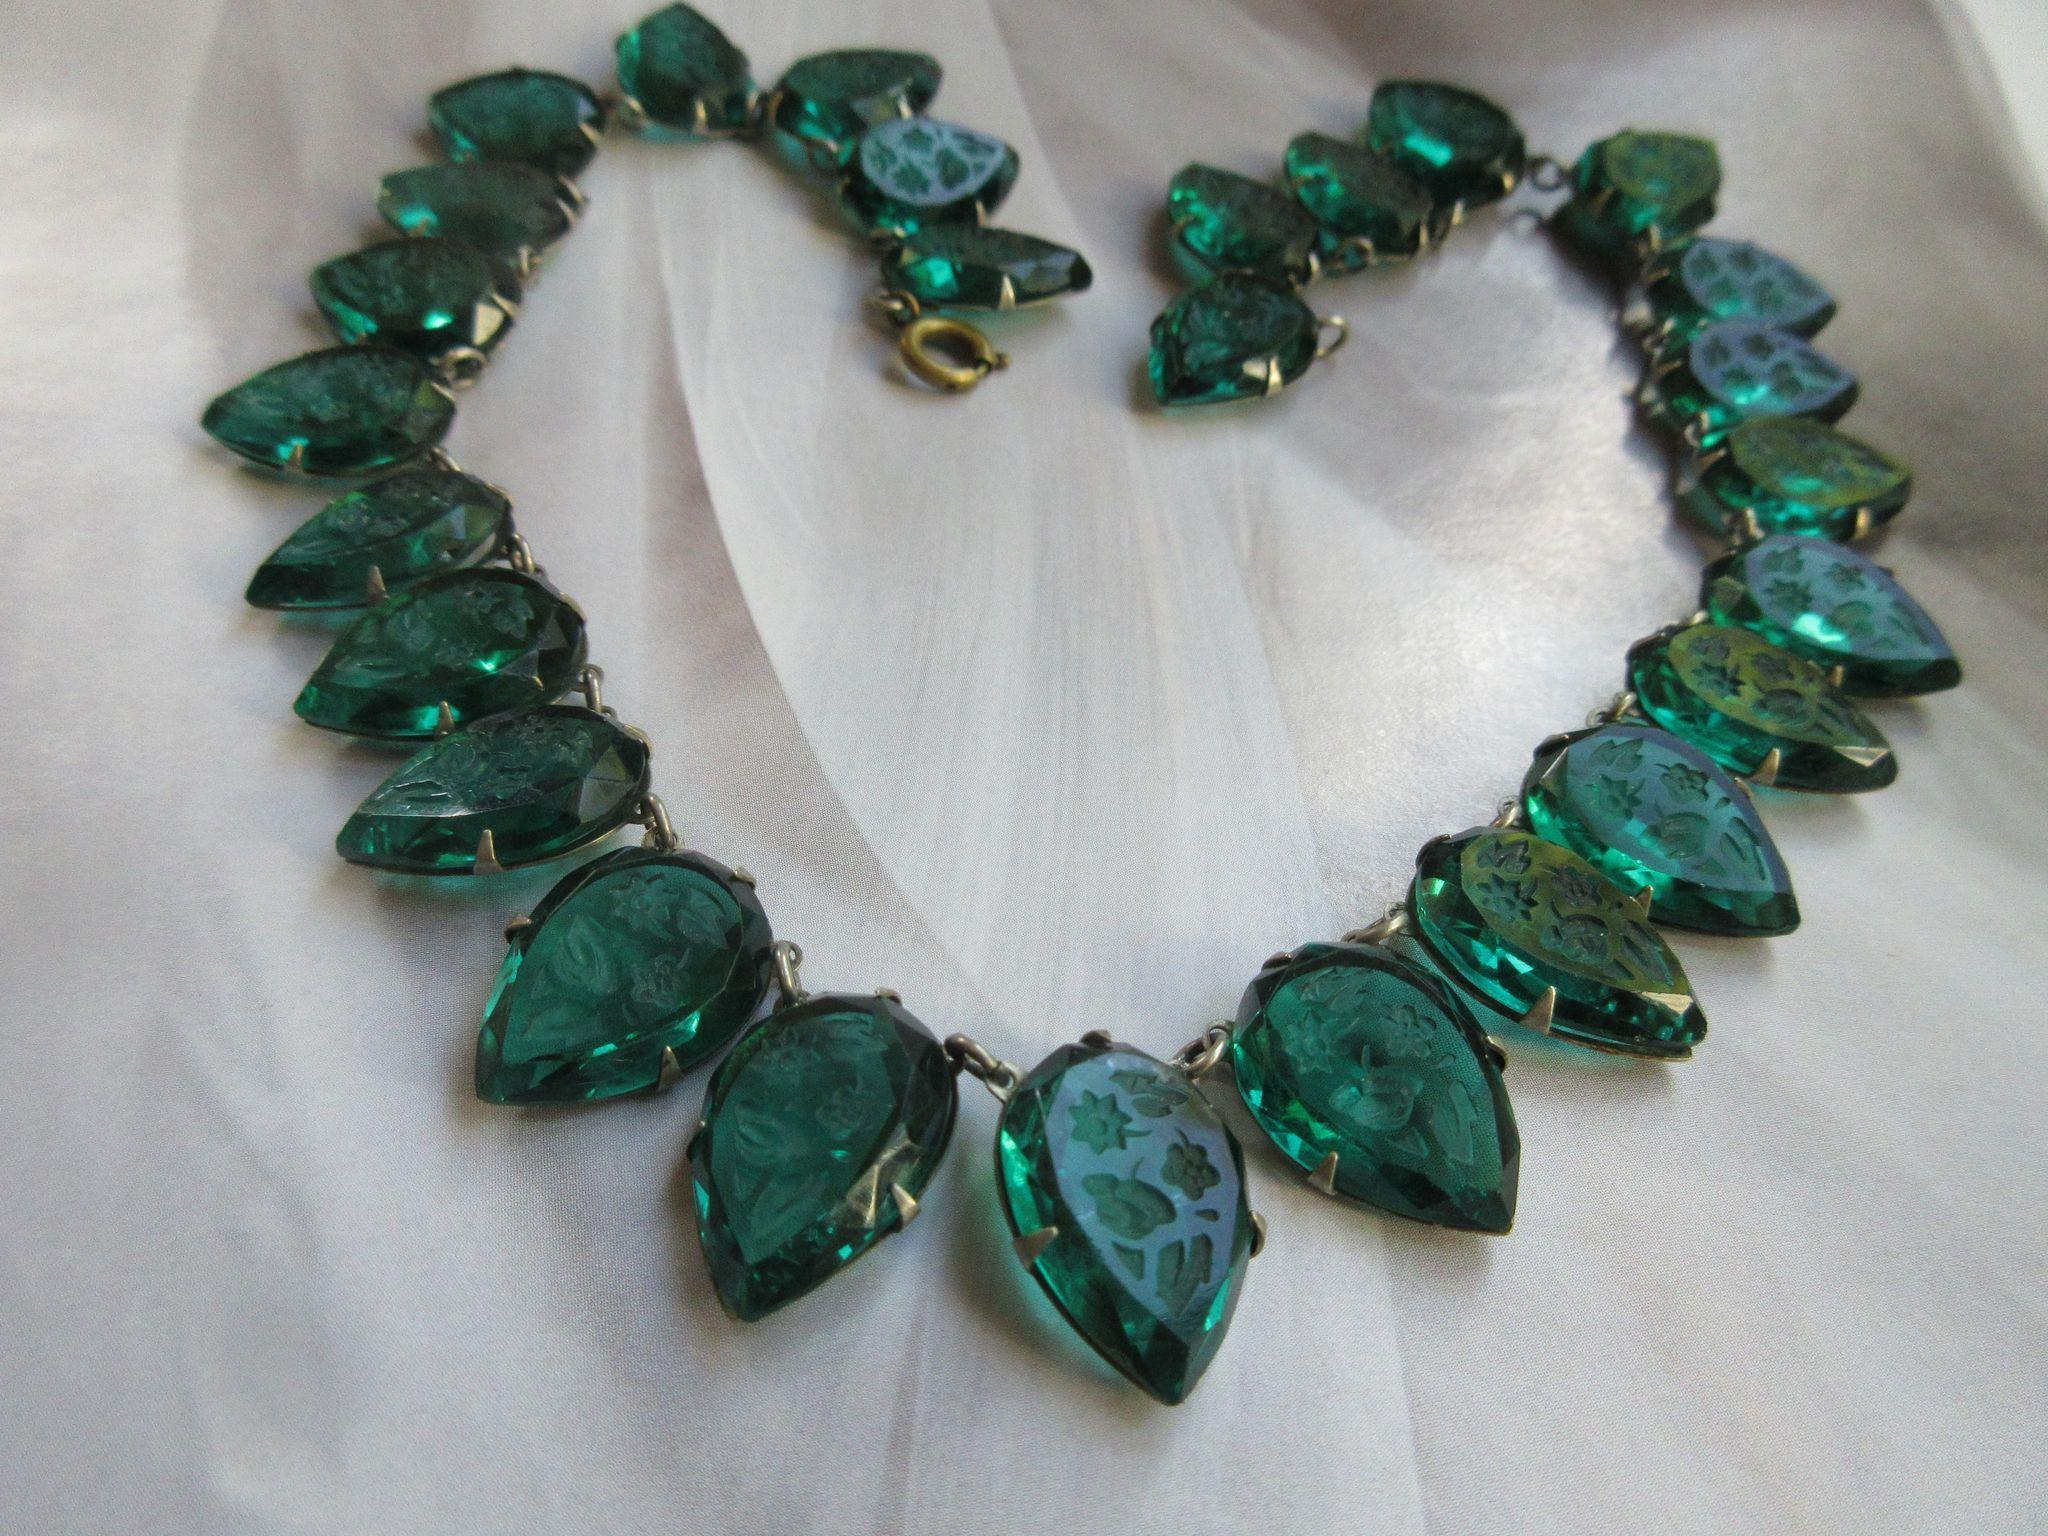 Vintage Circa 1920 Fishel Nessler FNCO Emerald Green Glass Intaglio Necklace